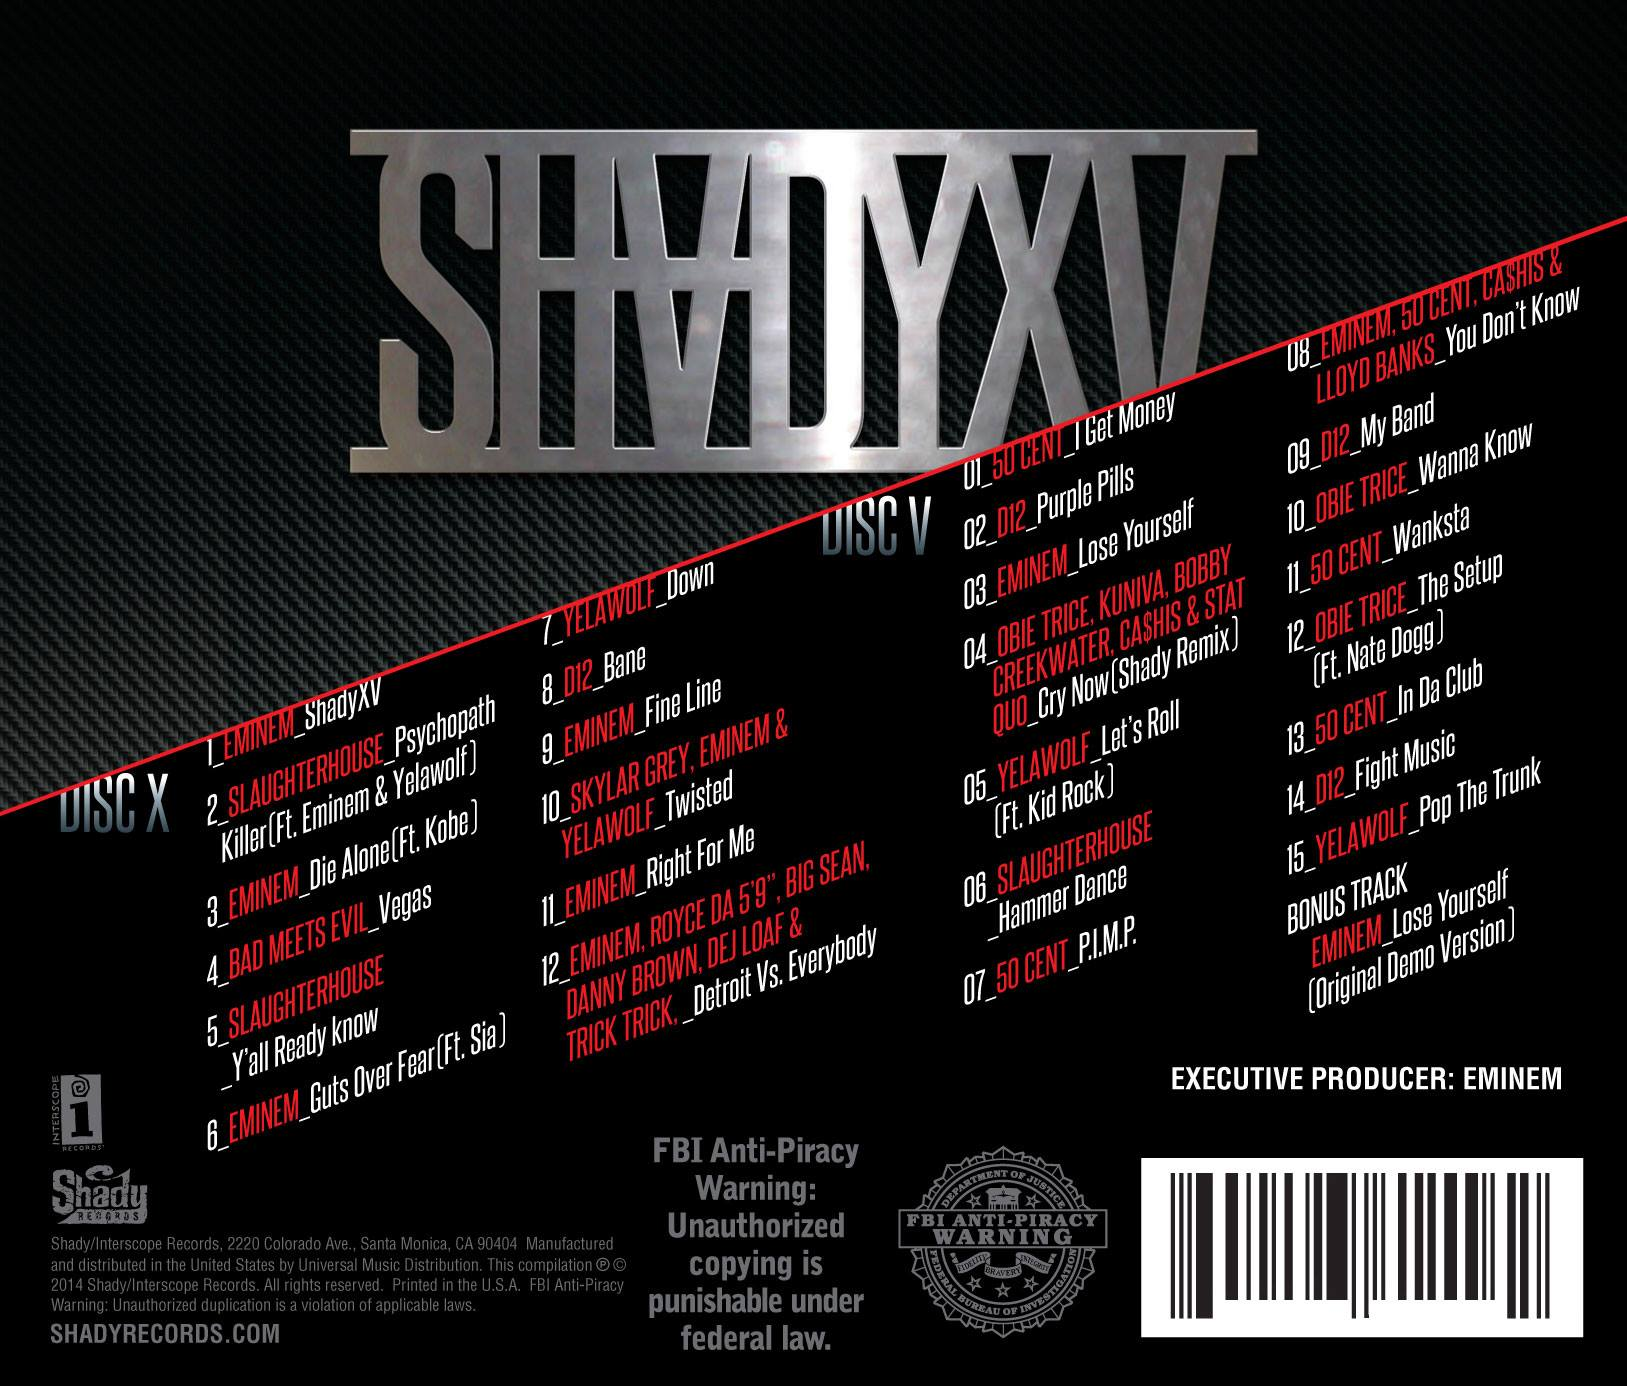 eminem shady xv, shady records shady xv, eminem bad meets evil, d12